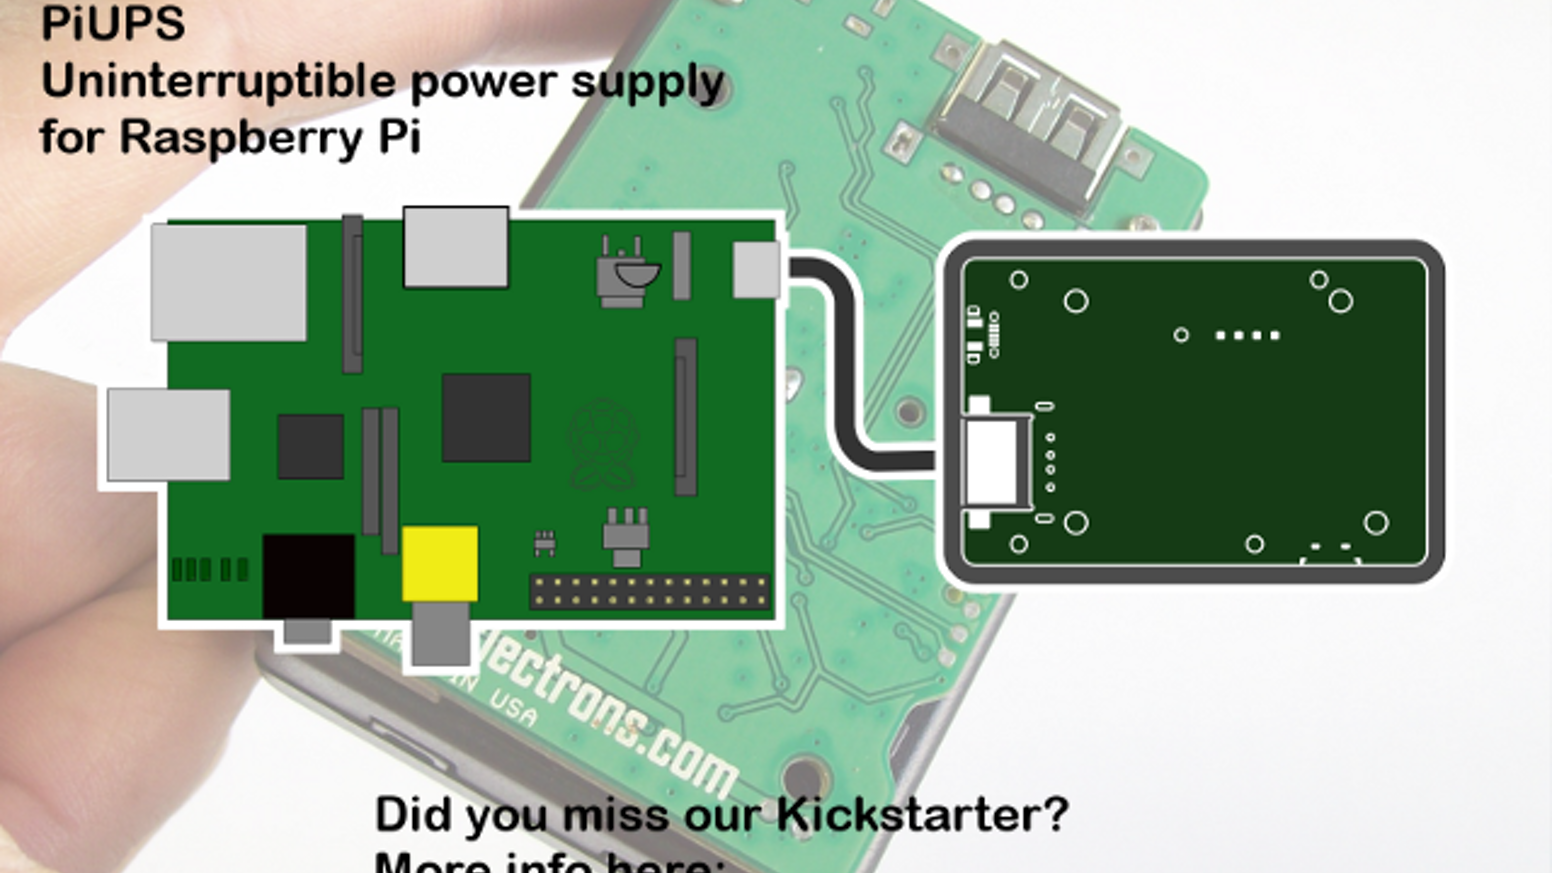 PiUPS - Uninterruptible power supply for Raspberry Pi by